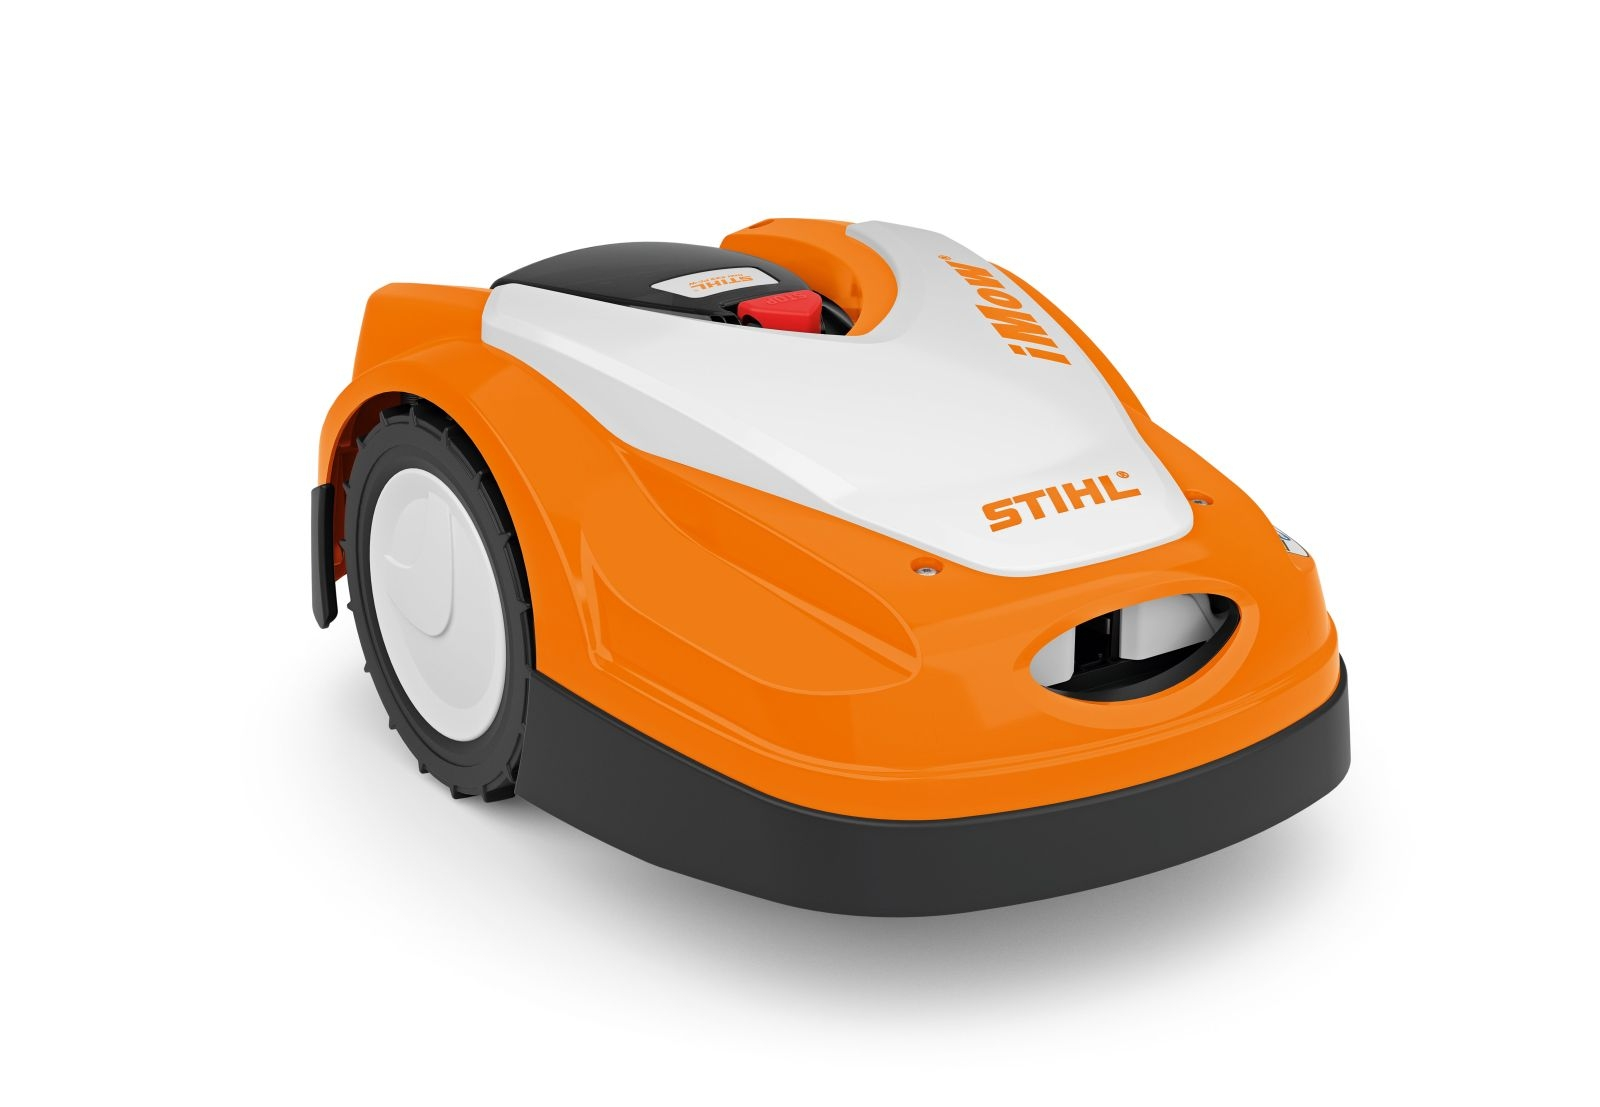 The STIHL Robotic Mower!